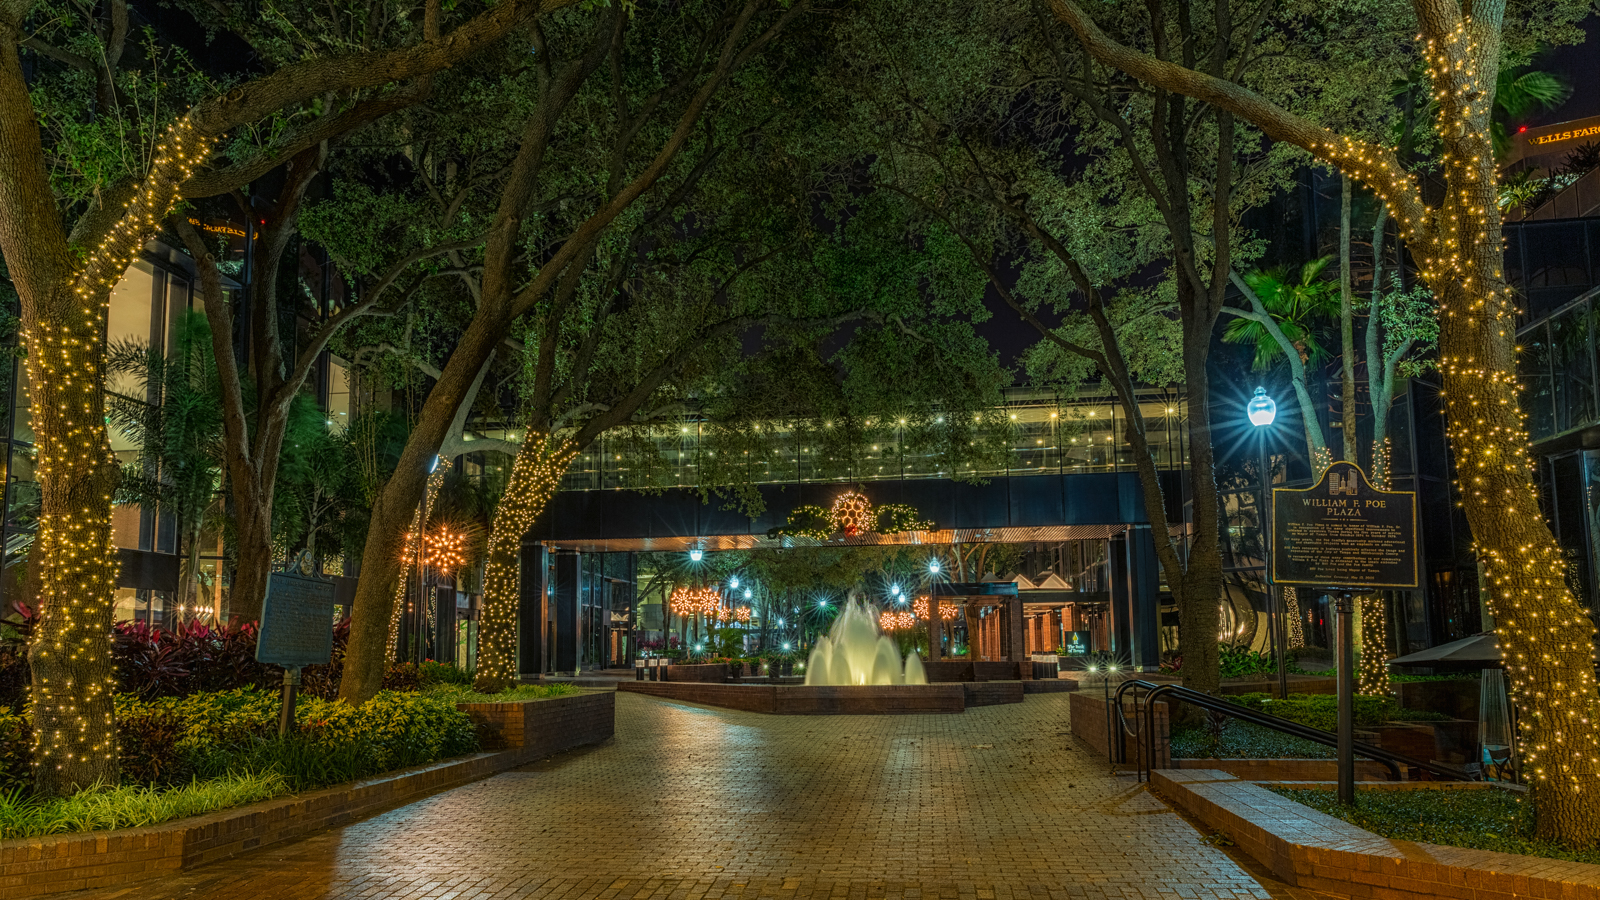 william f poe plaza with christmas lights tampa florida - Christmas Lights Tampa